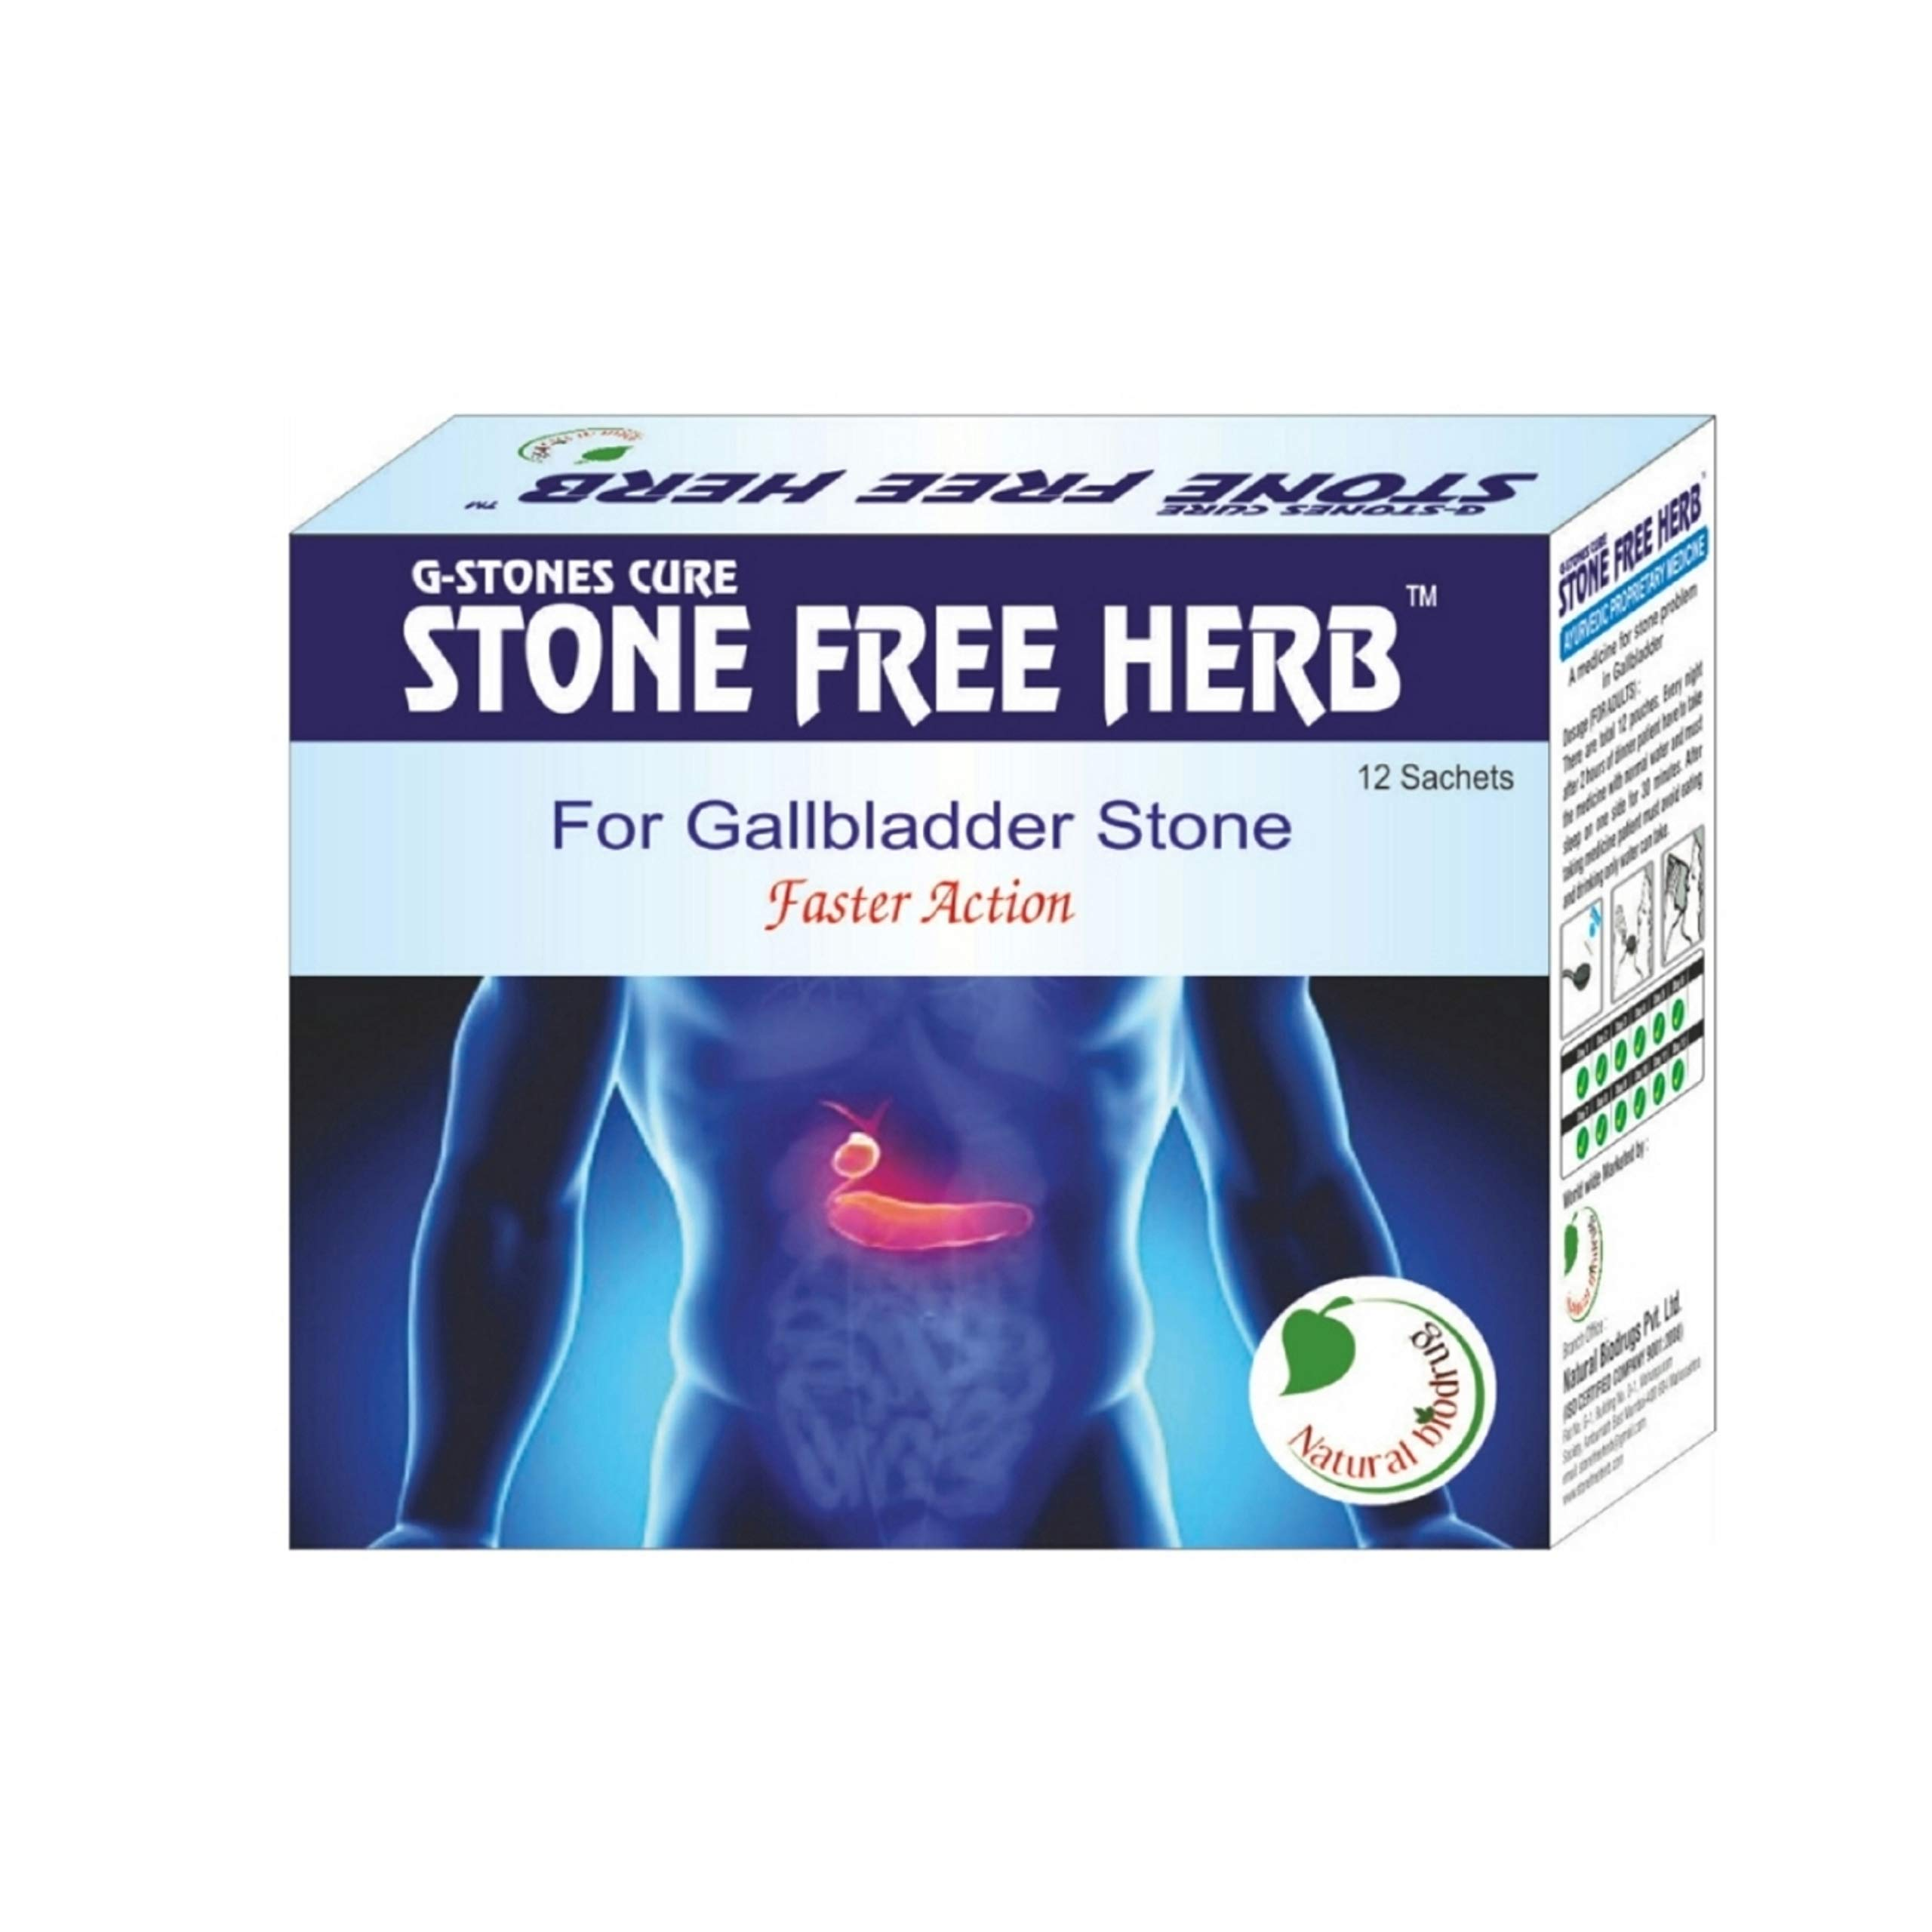 G Stone Cure (for Gall Bladder Stone) by STONEFREEHERB